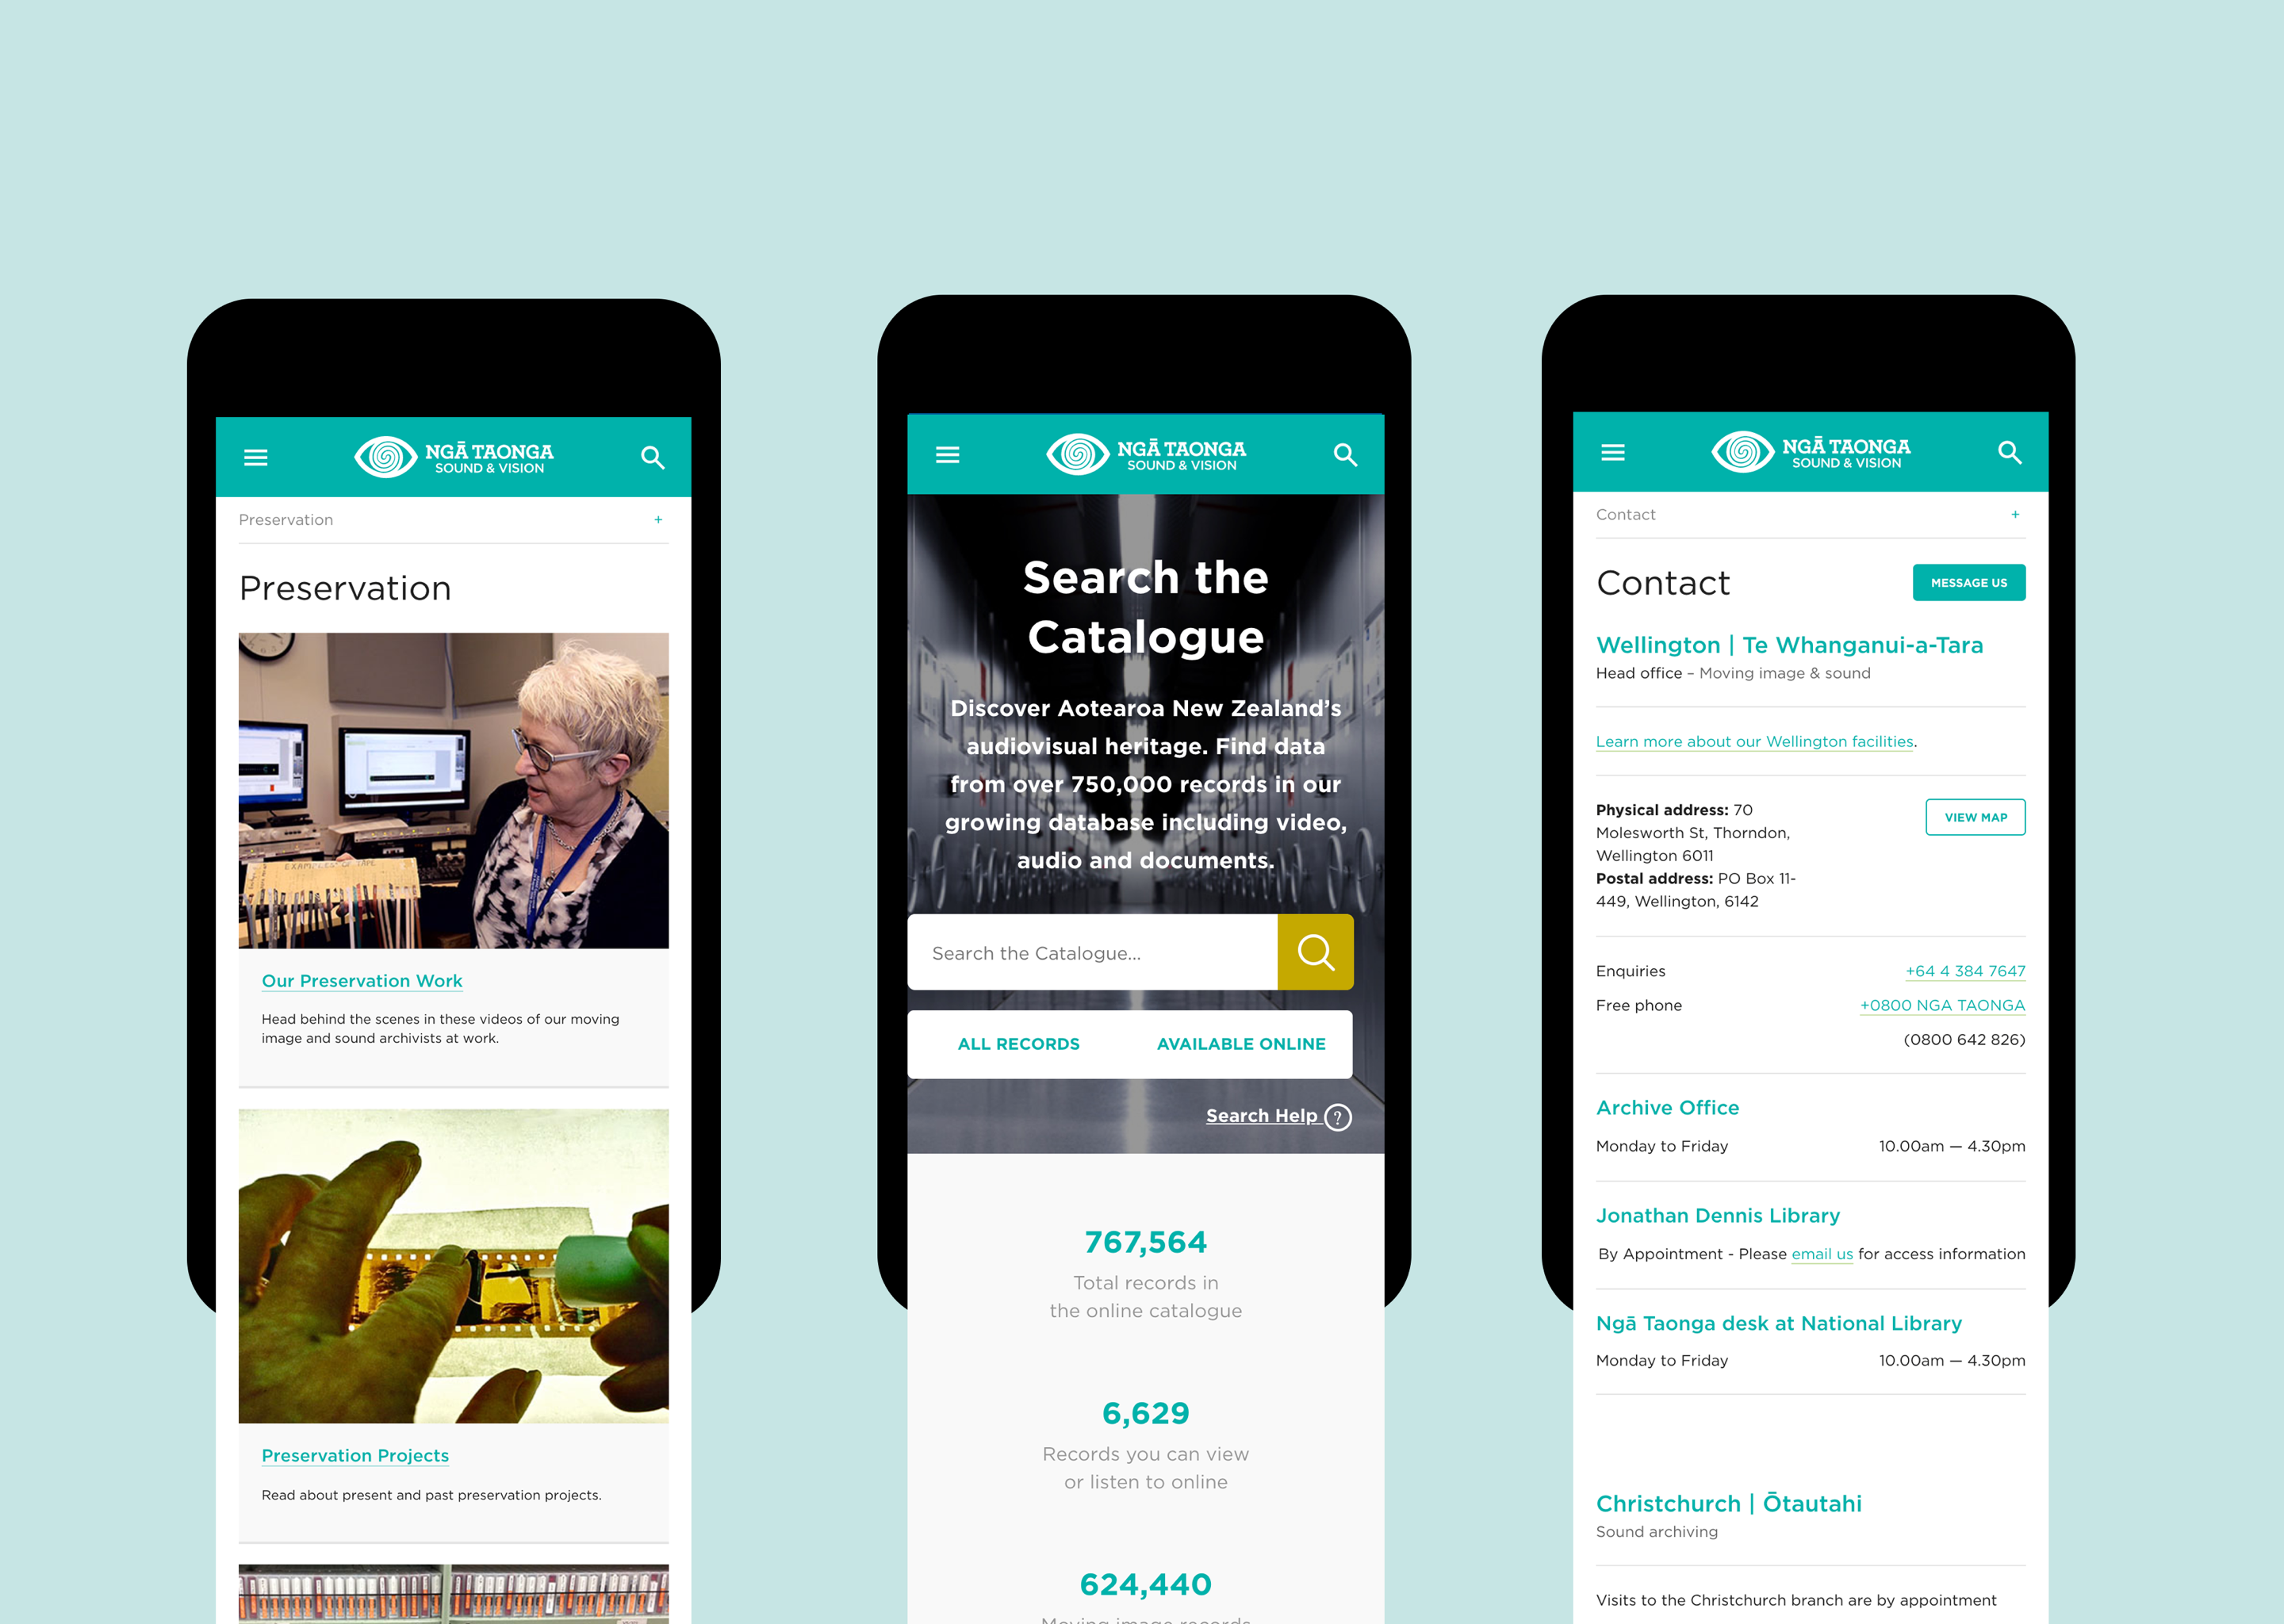 Mobile mockups showing examples of easy-to-use features enabled by the development of the Ngā Taonga web application.